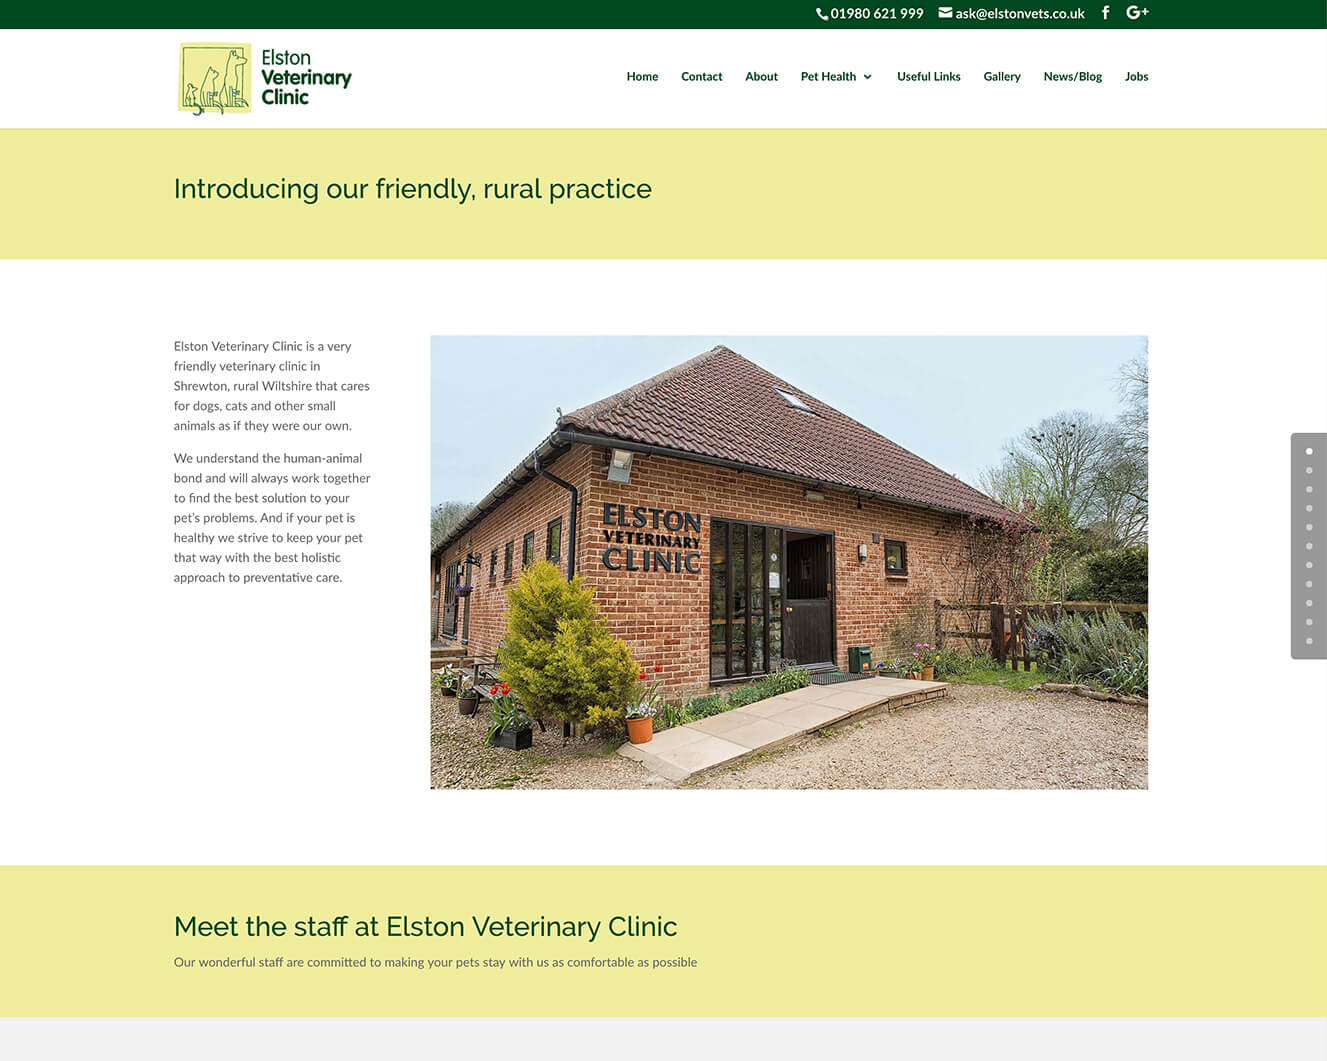 Veterinary website design for Elston Vets: About page